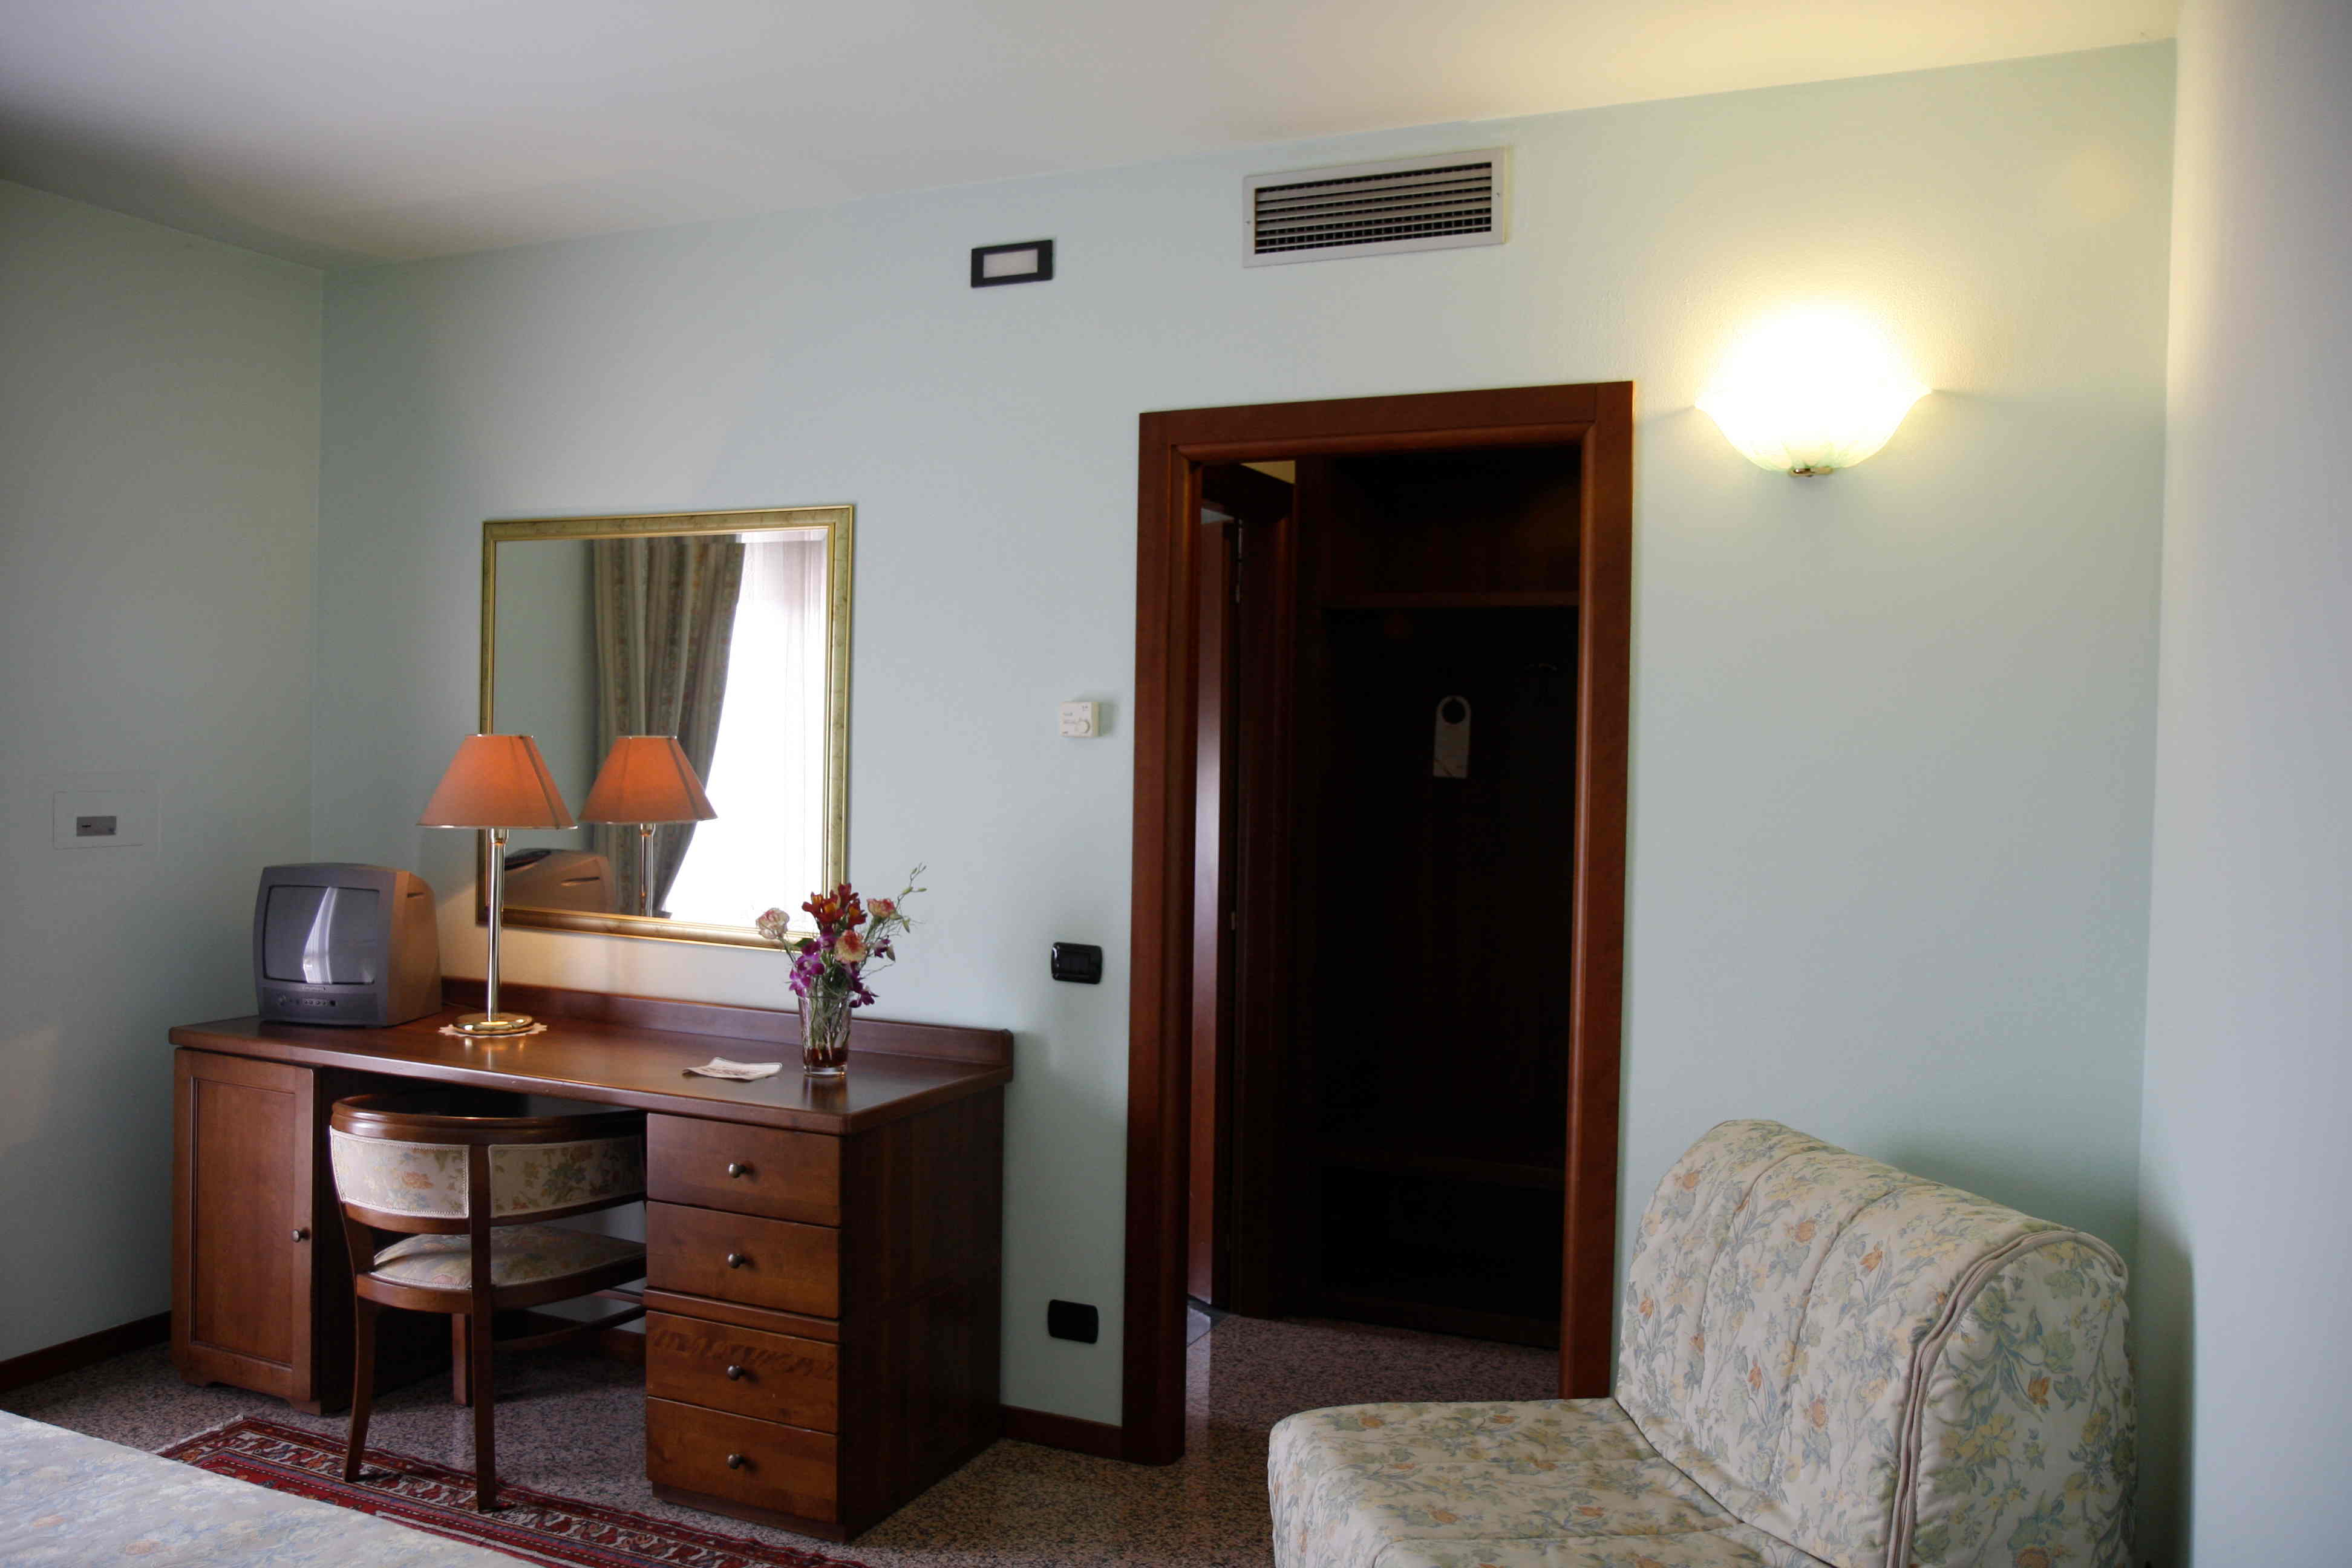 Rooms (6)